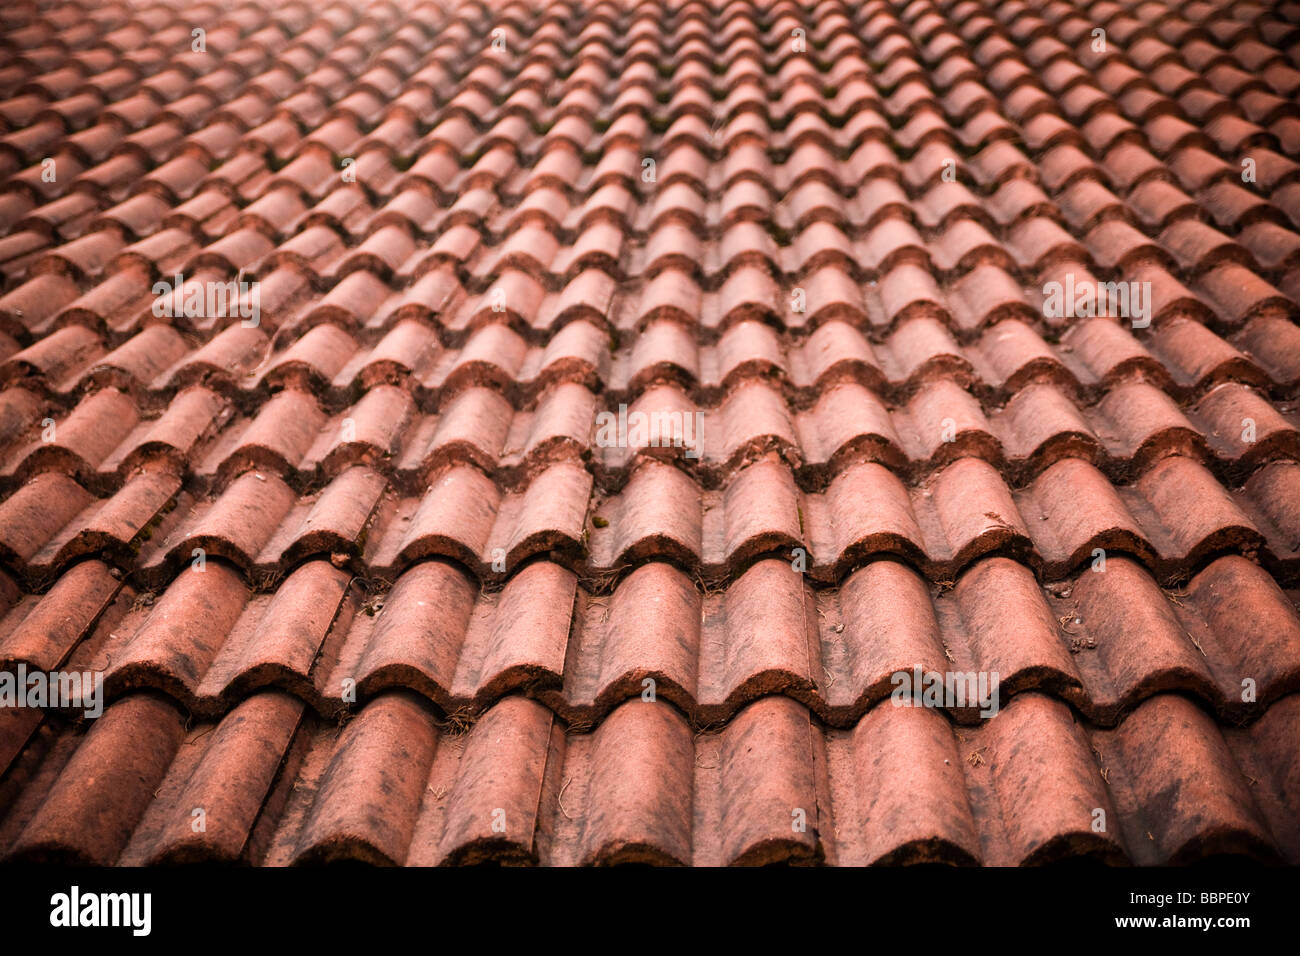 Detail of brick tile roof - Stock Image